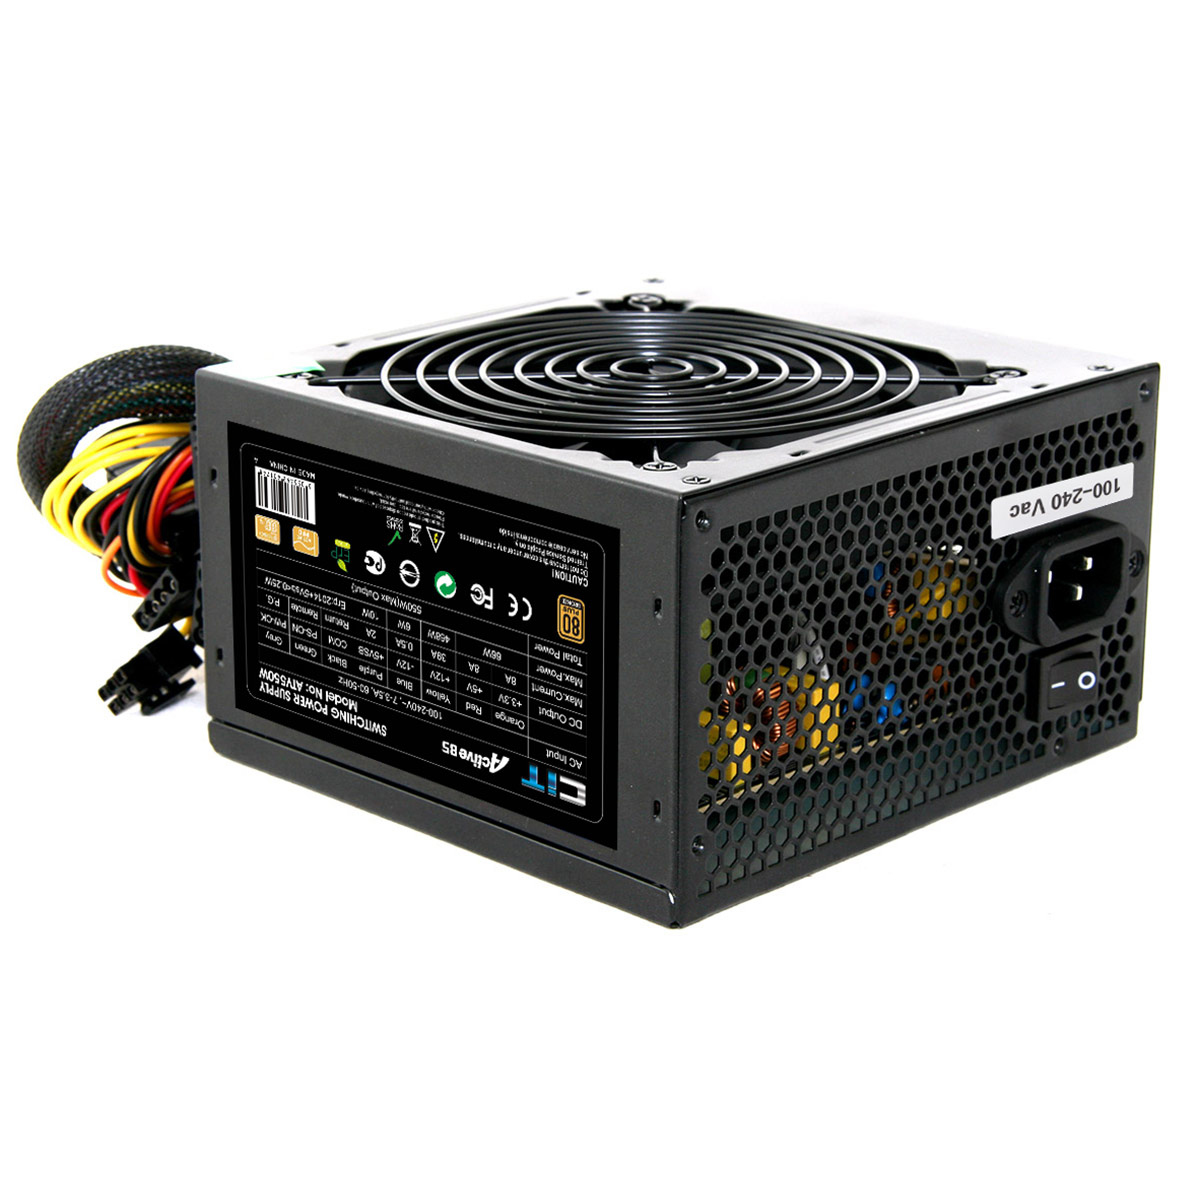 CiT ATV-550W 550W Black